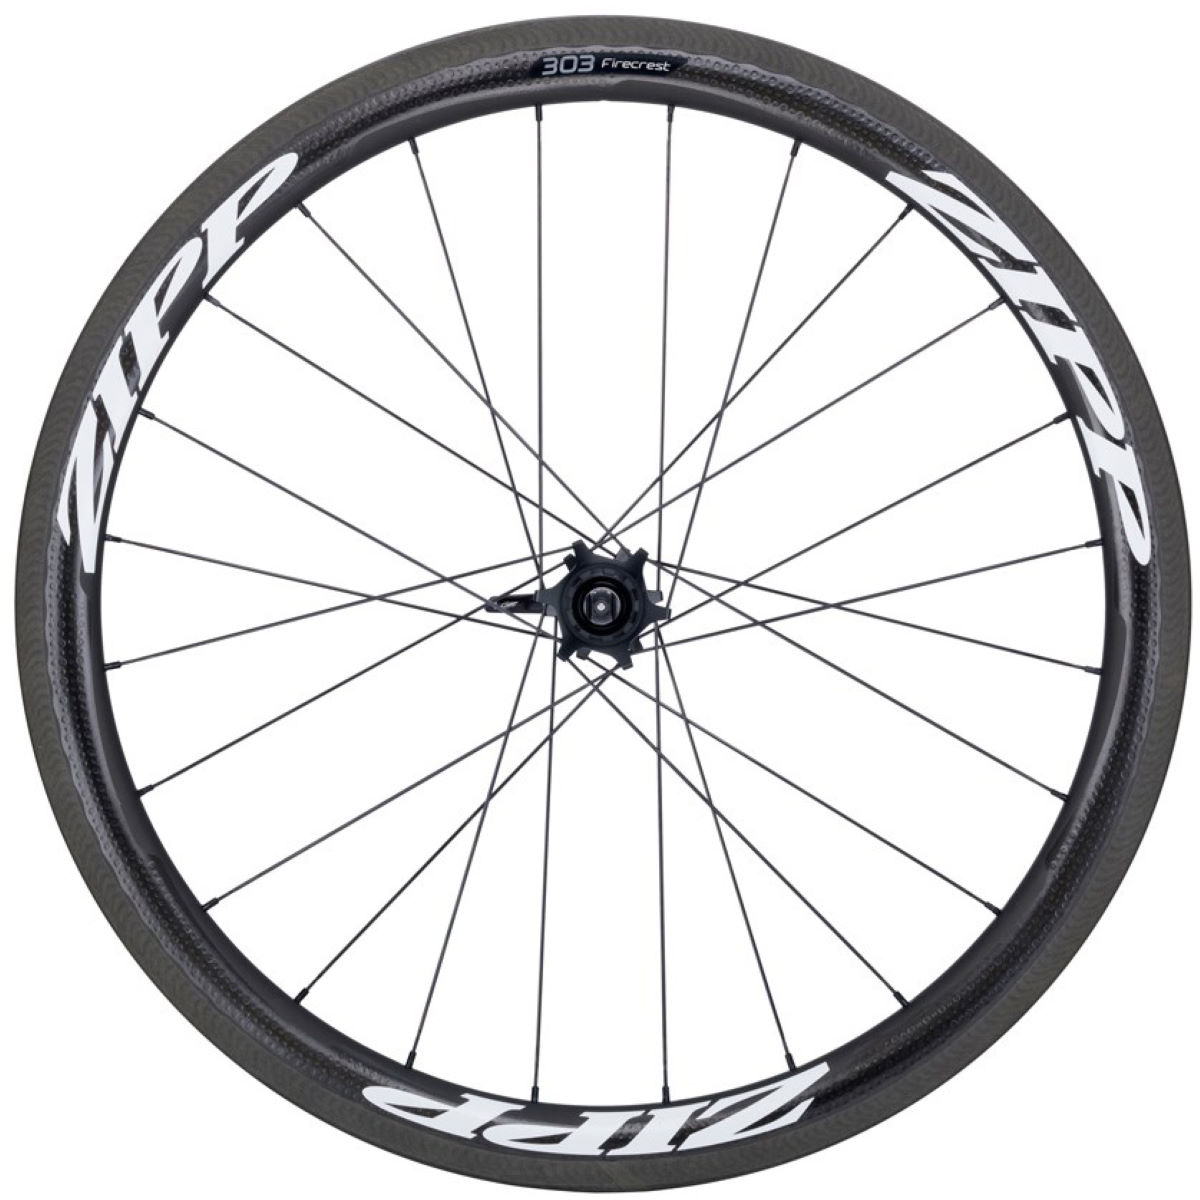 Zipp 303 Carbon Tubular Rear Wheel (700c QR 10x130mm)   Performance Wheels